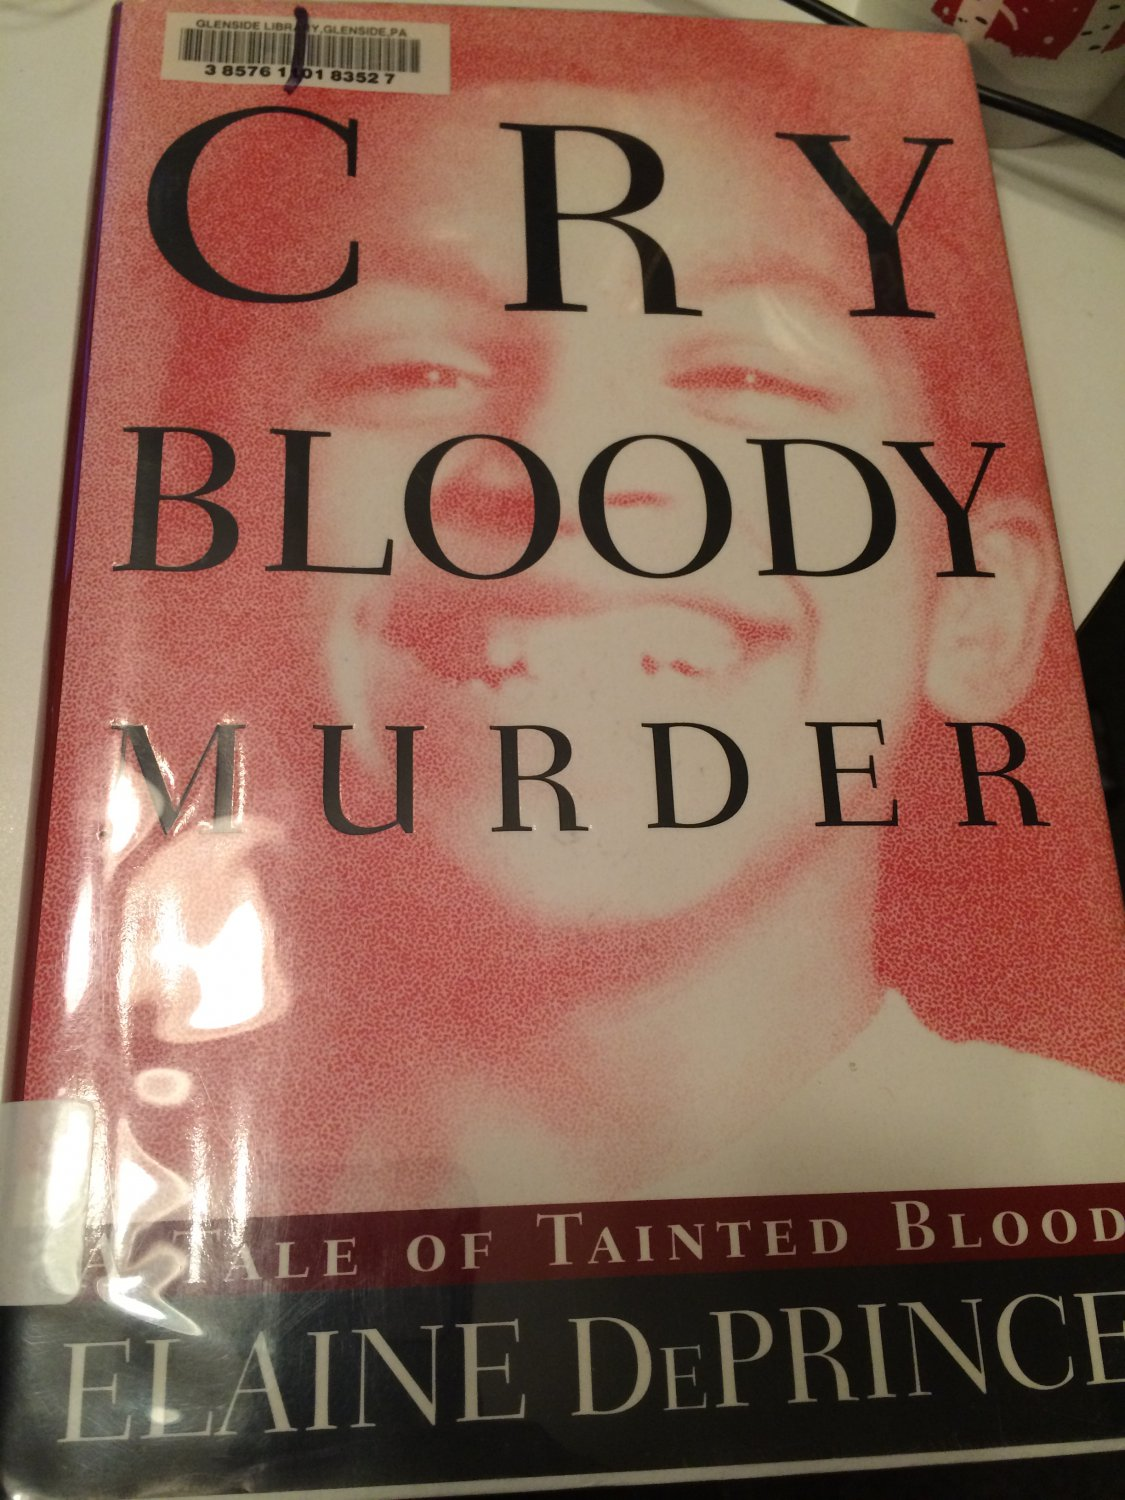 Cry Bloody Murder:: A Tale of Tainted Blood [Jun 17, 1997] Deprince, Elaine